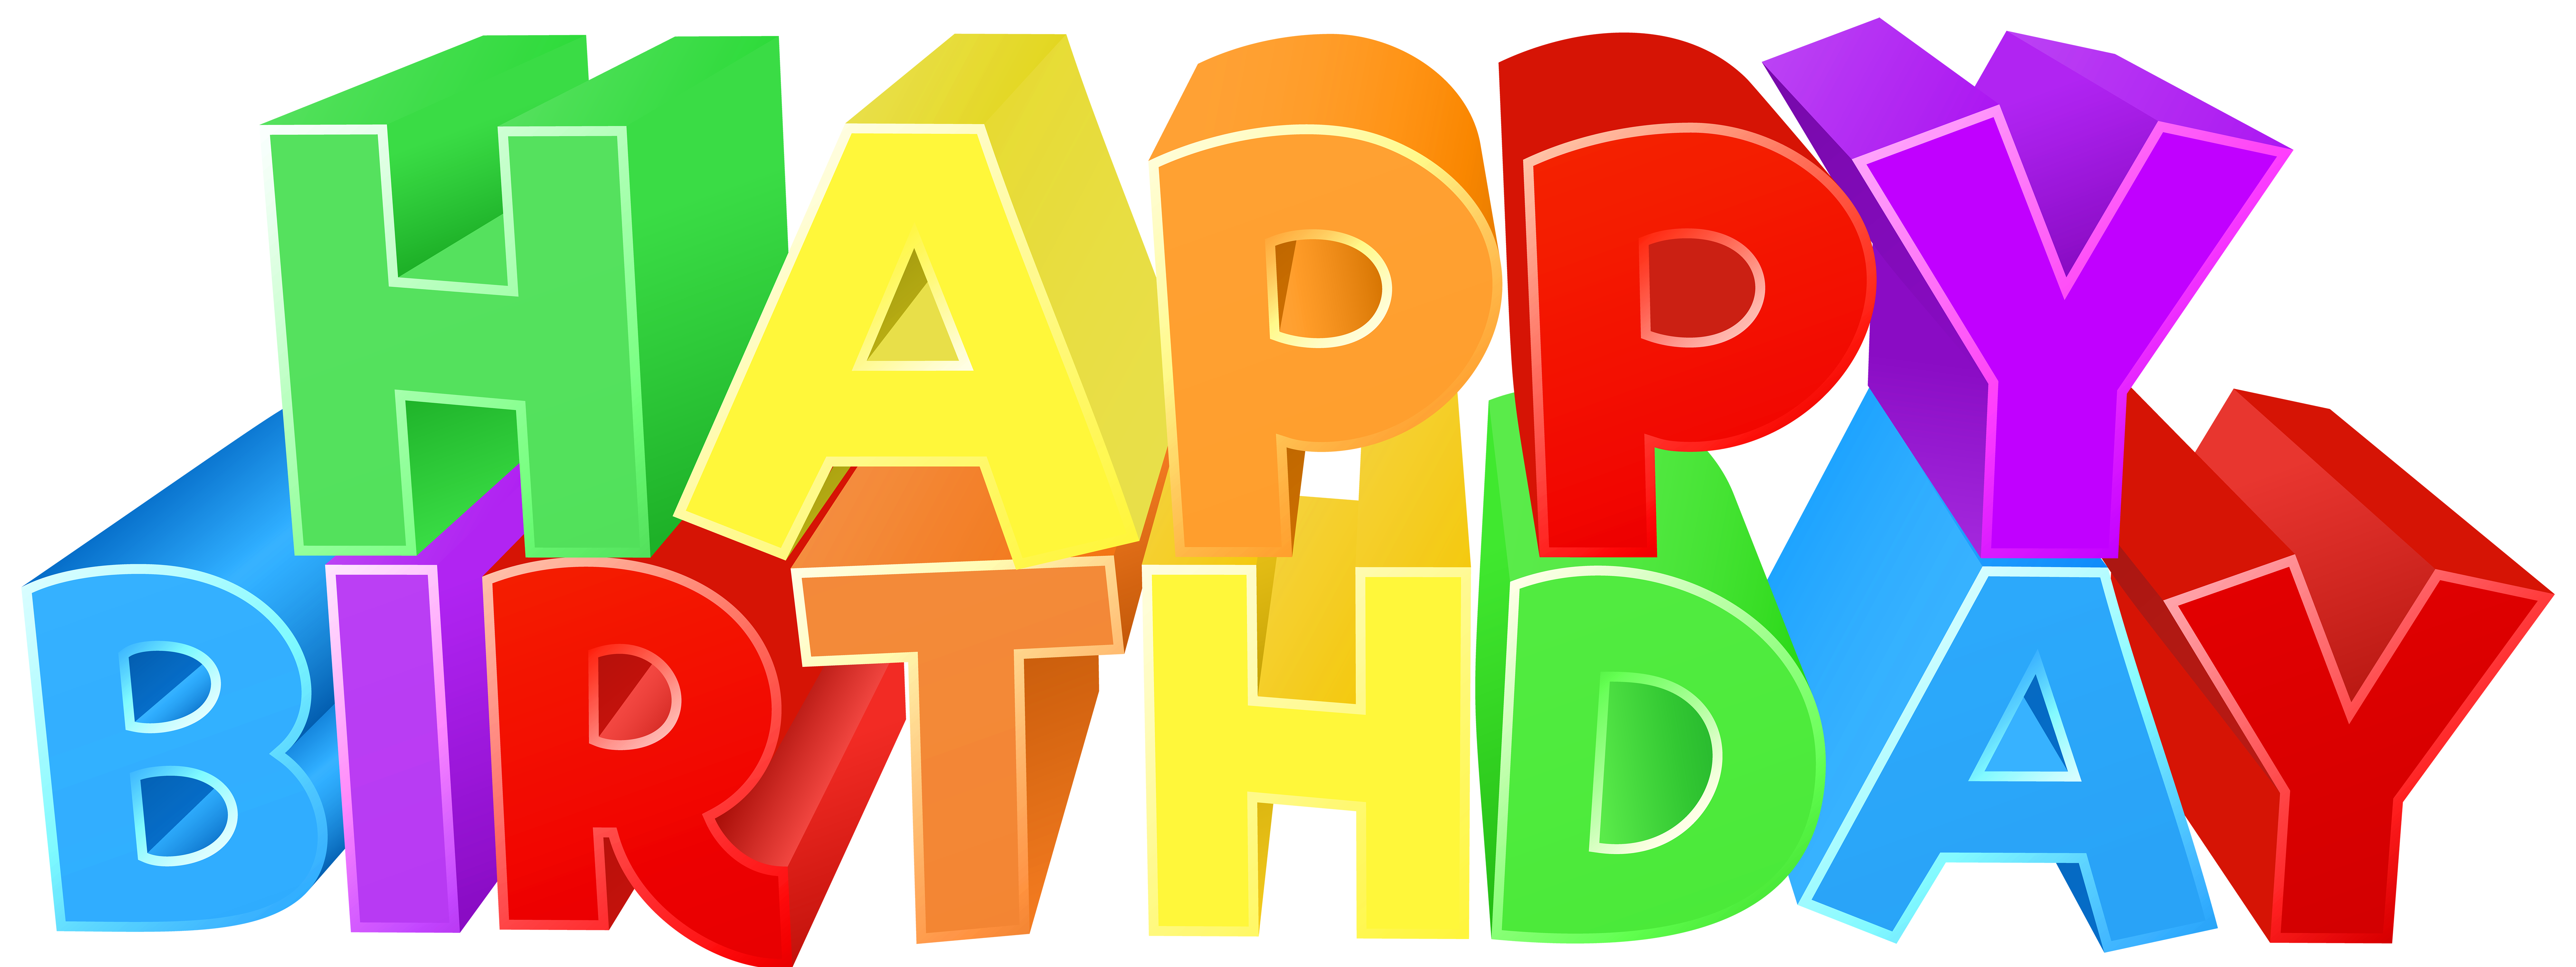 free birthday clipart colorful